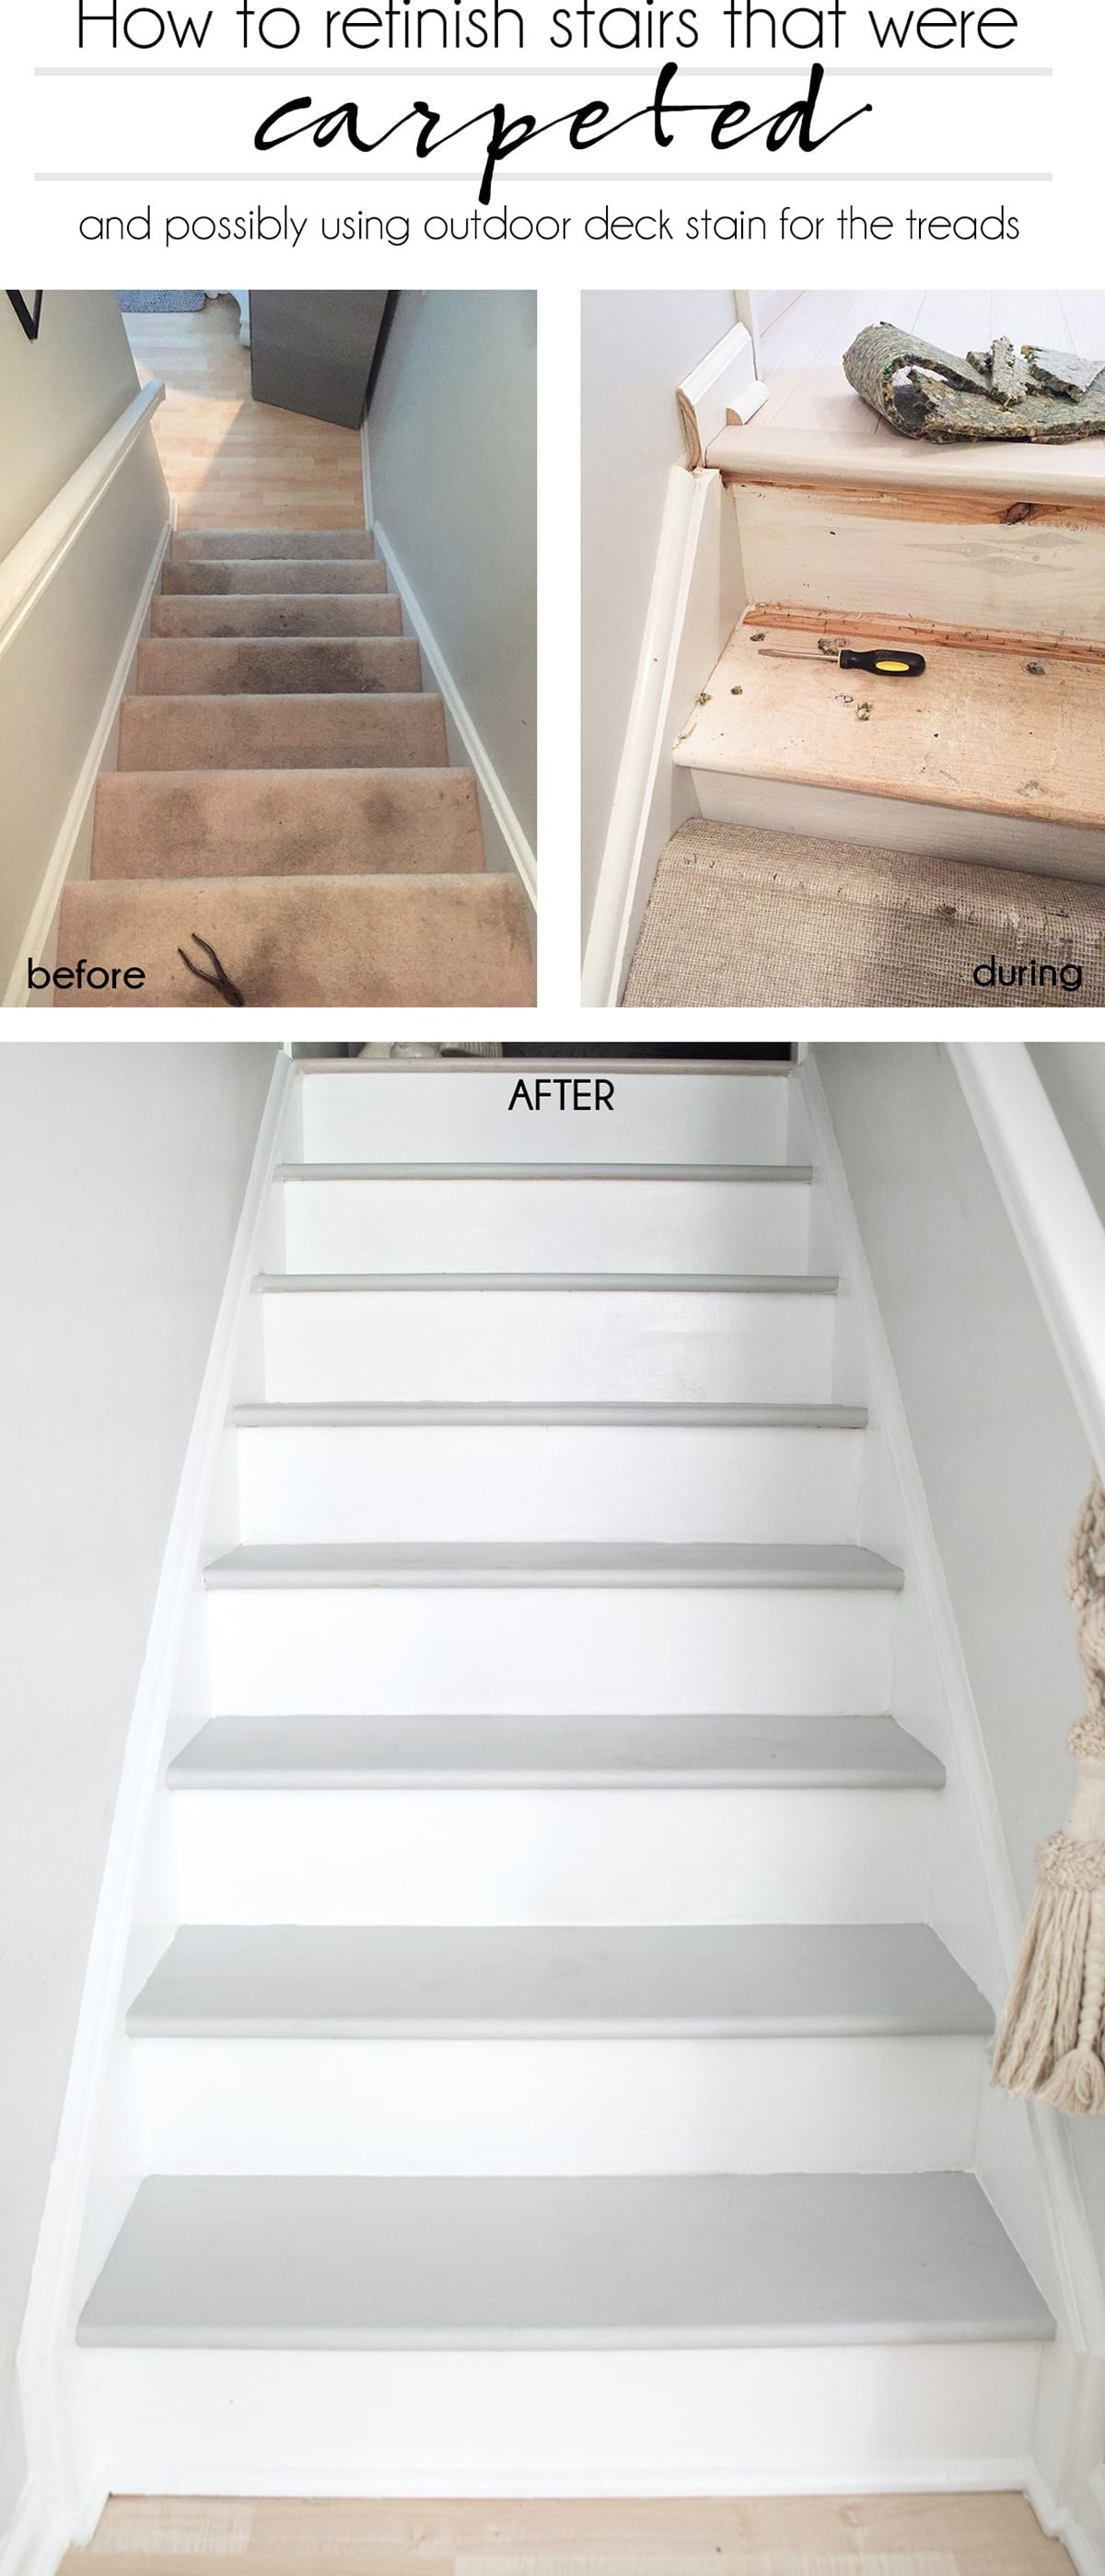 How To Refinish Stairs That Were Carpeted Cuckoo4Design | Redoing Carpeted Stairs To Wood | Hardwood Floors | Stair Tread | Stair Risers | Stair Case | Staircase Remodel